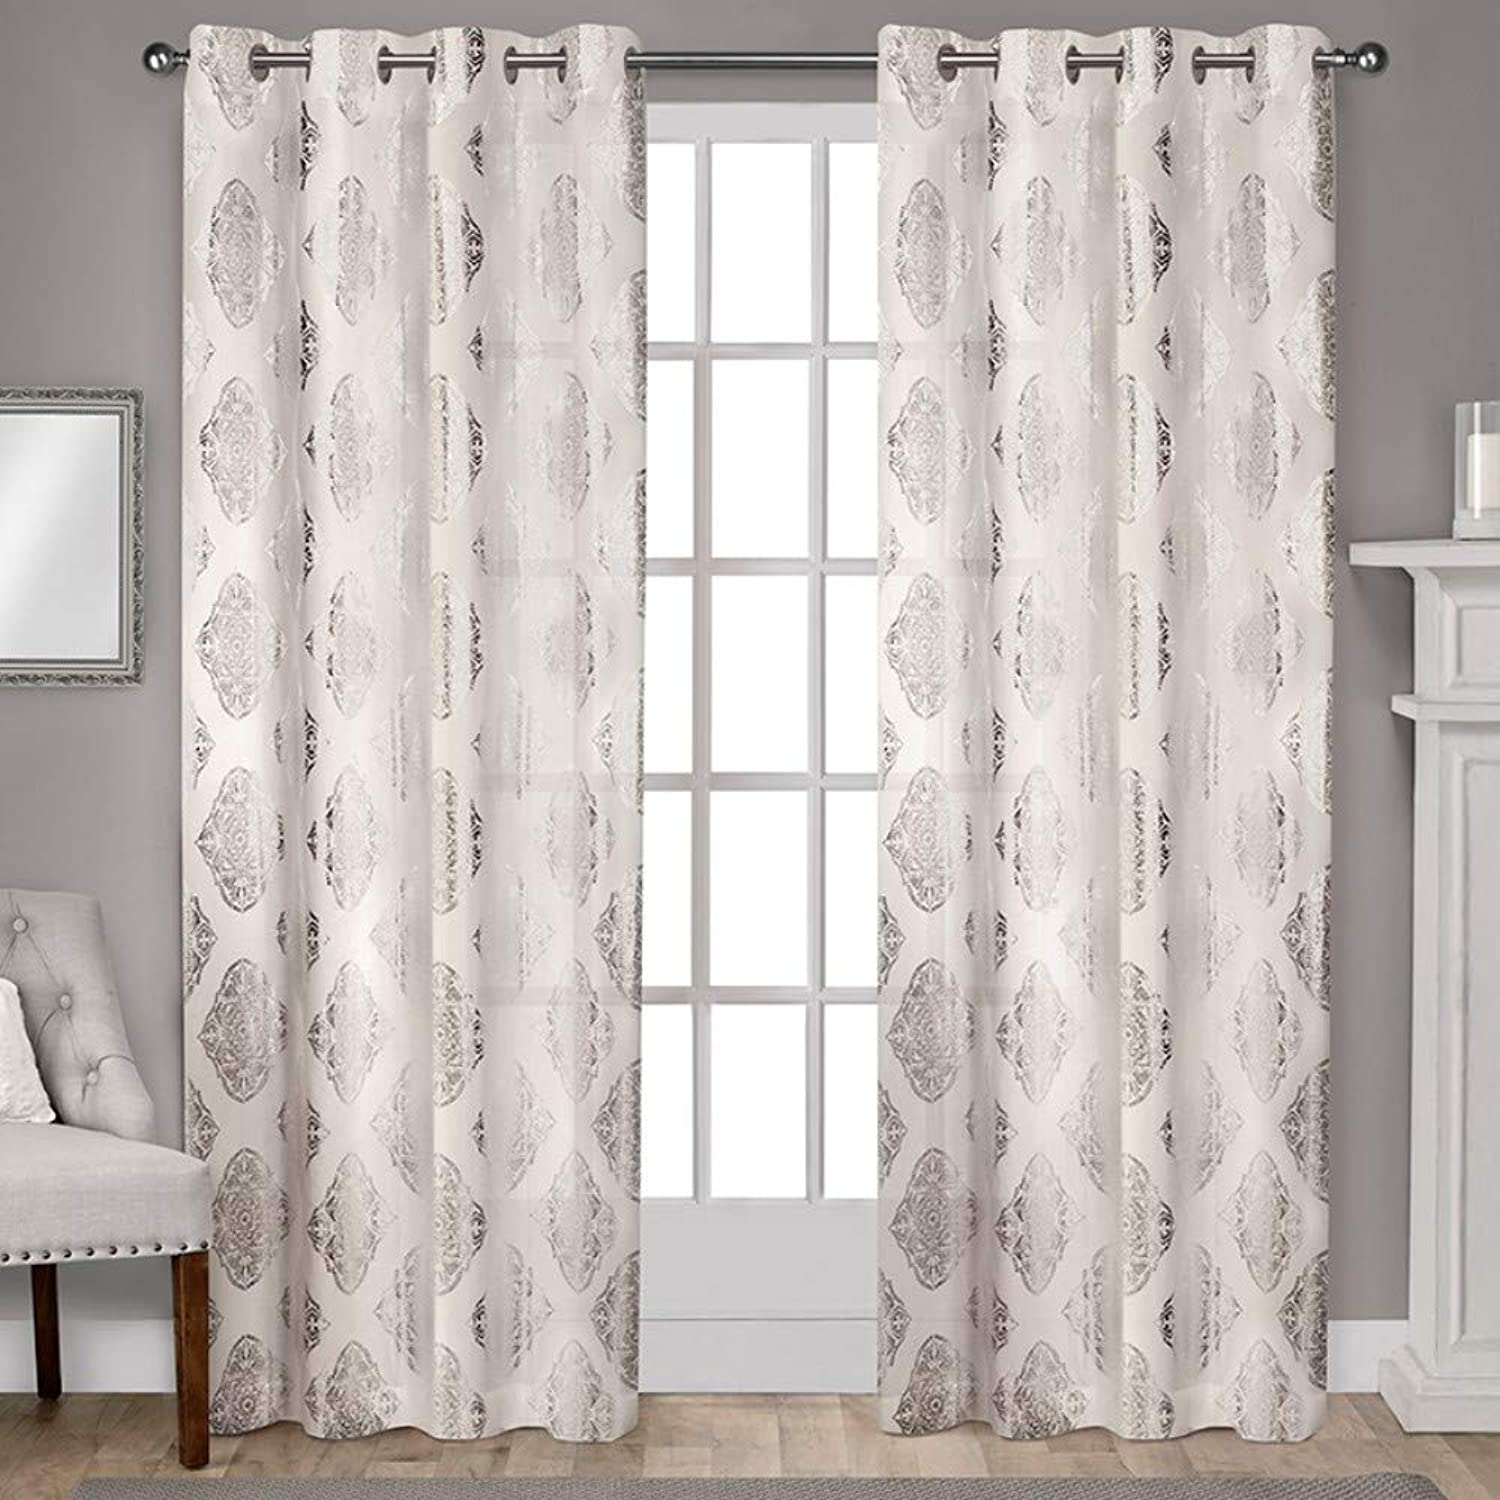 Exclusive Home Curtains Augustus Metallic Light Filtering Window Curtain Panel Pair with Grommet Top, 54x96, Off- Off-white, 2 Piece